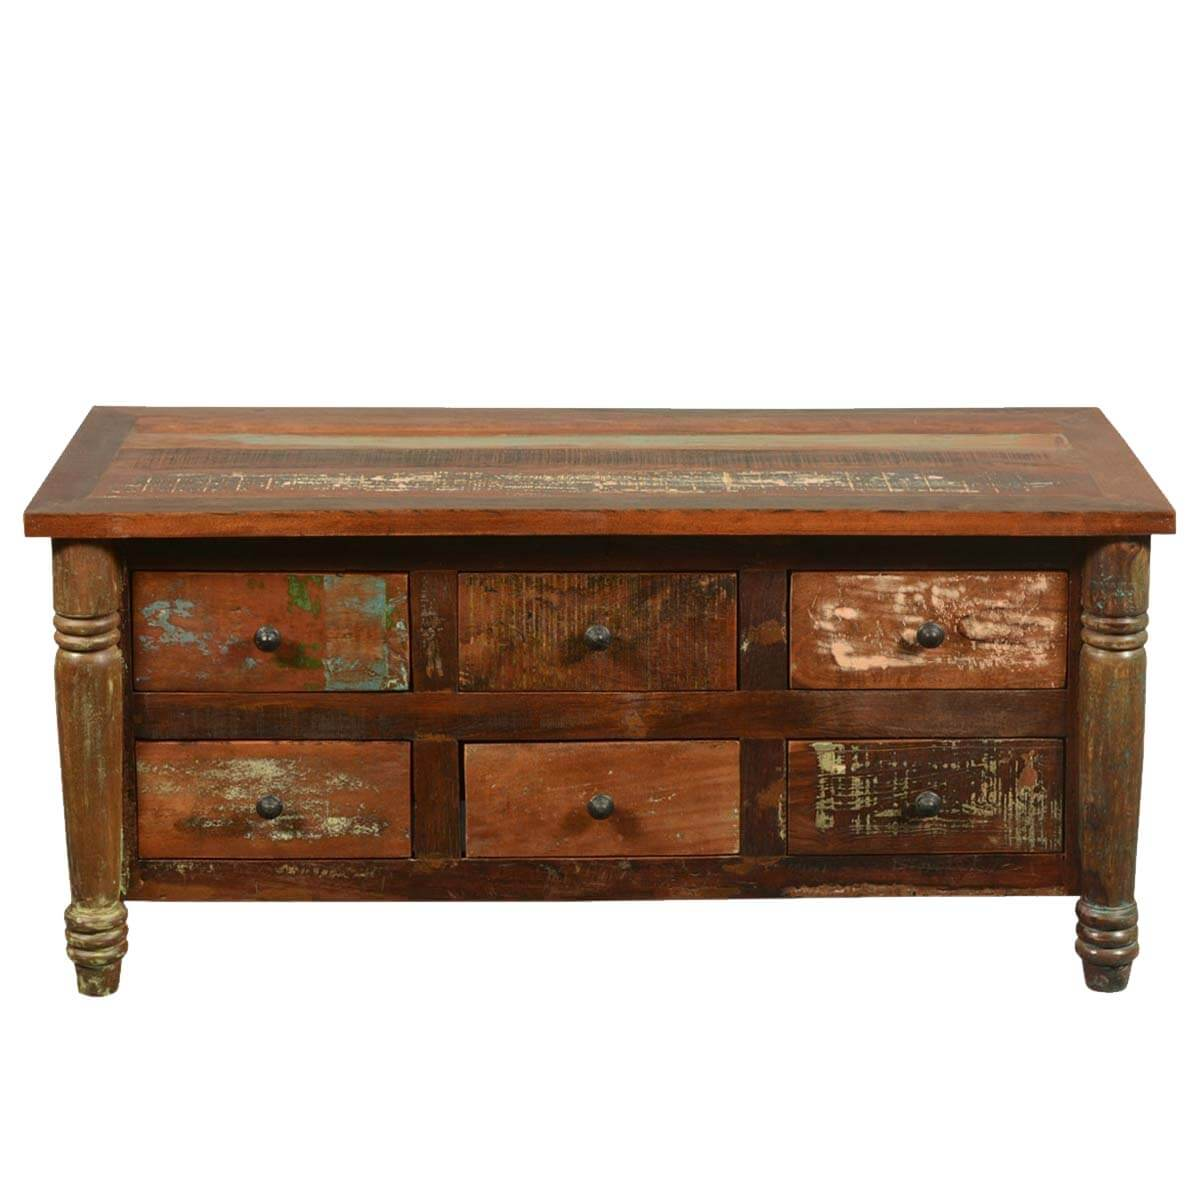 Appalachian rustic reclaimed wood coffee table chest of